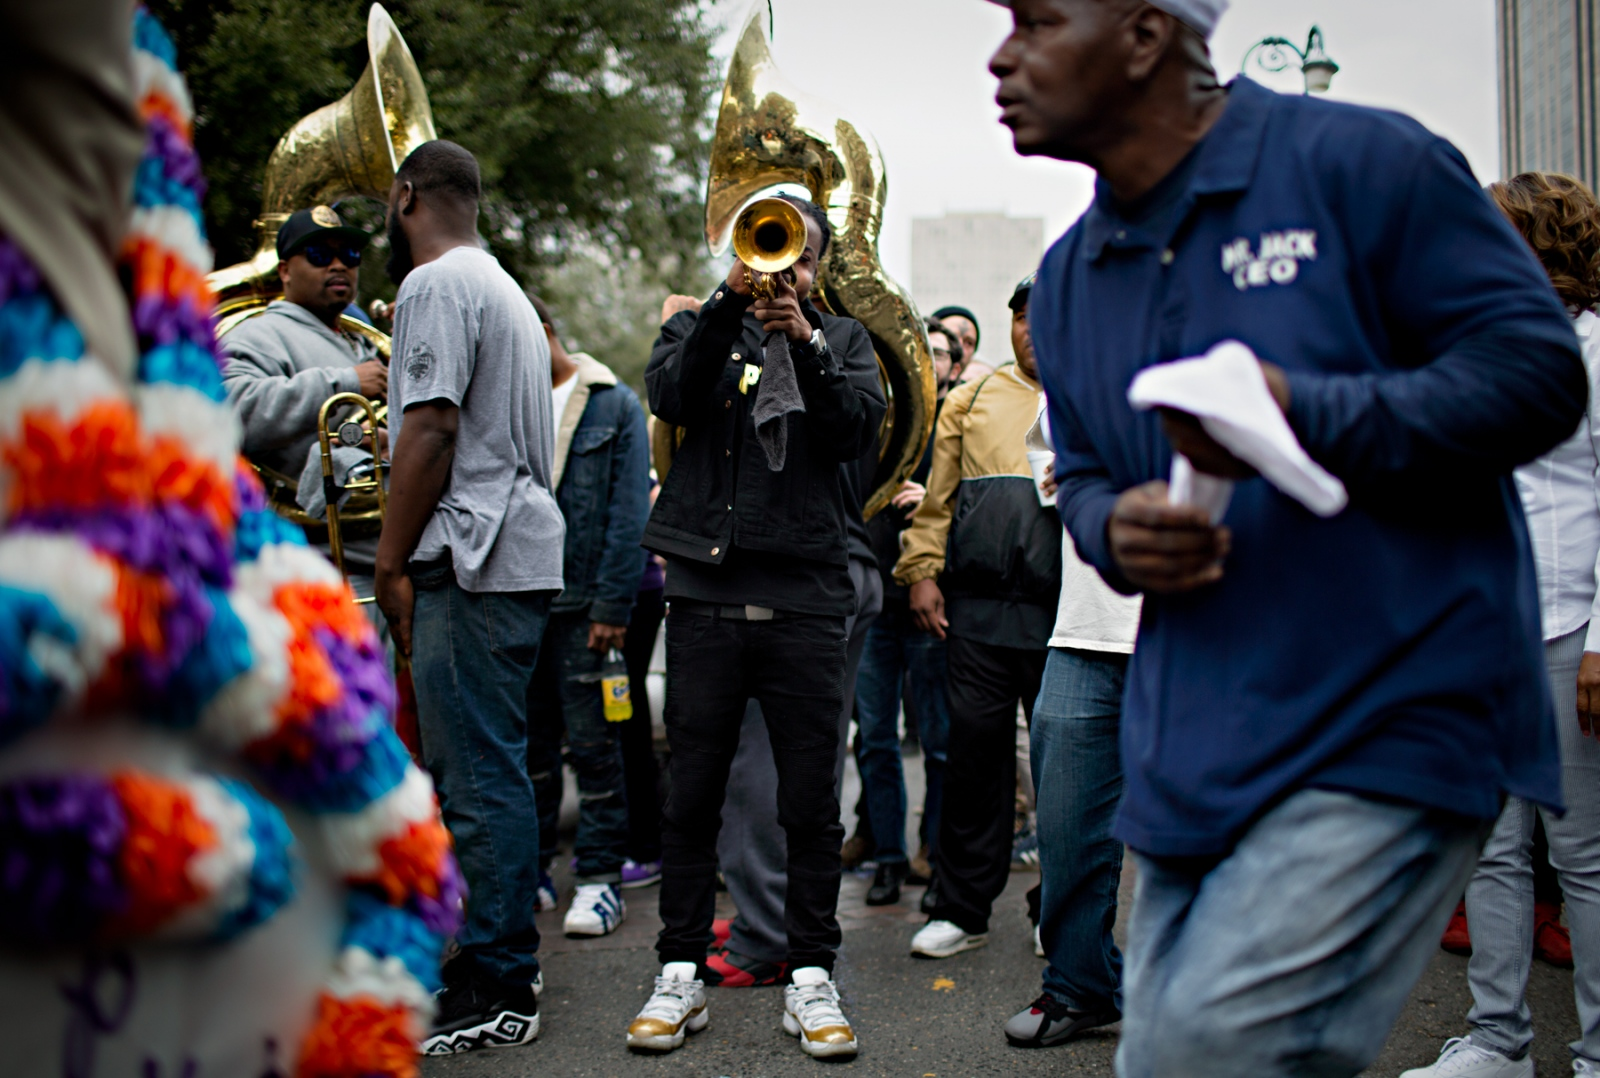 A musician plays his trumpet while other members of his brass band take a break.